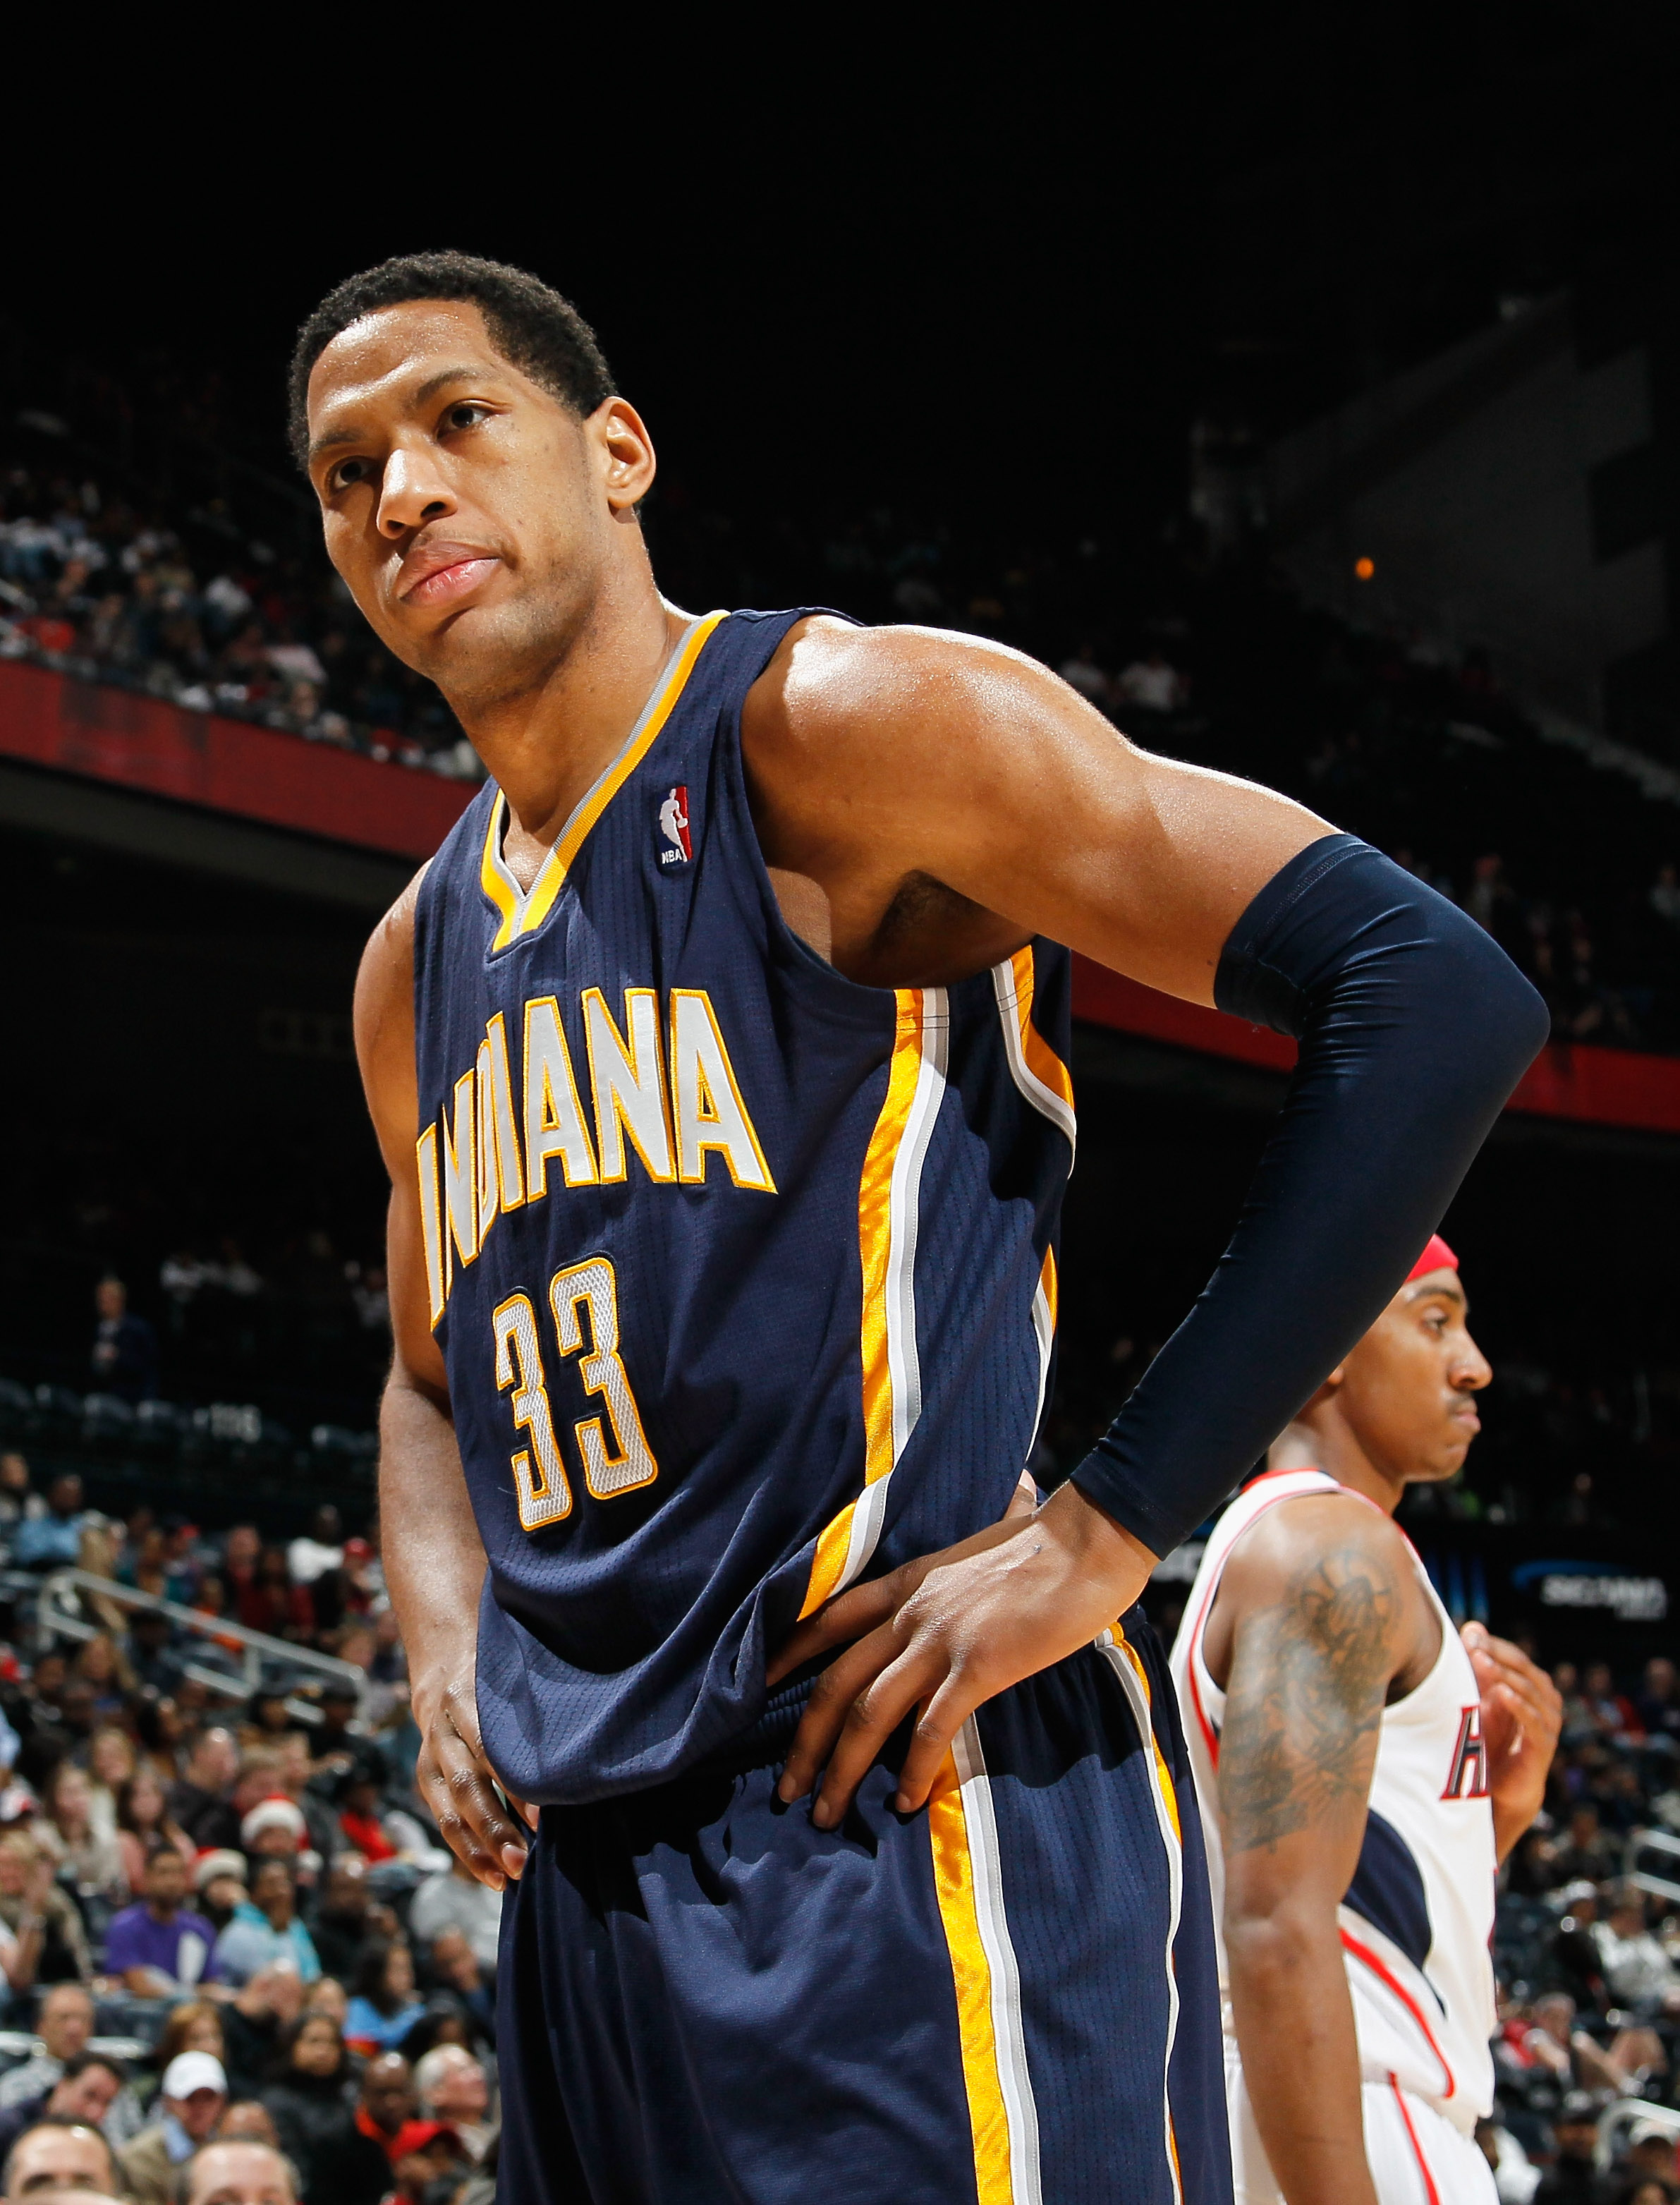 ATLANTA, GA - DECEMBER 11:  Danny Granger #33 of the Indiana Pacers reacts after not drawing a foul from the Atlanta Hawks at Philips Arena on December 11, 2010 in Atlanta, Georgia.  NOTE TO USER: User expressly acknowledges and agrees that, by downloadin